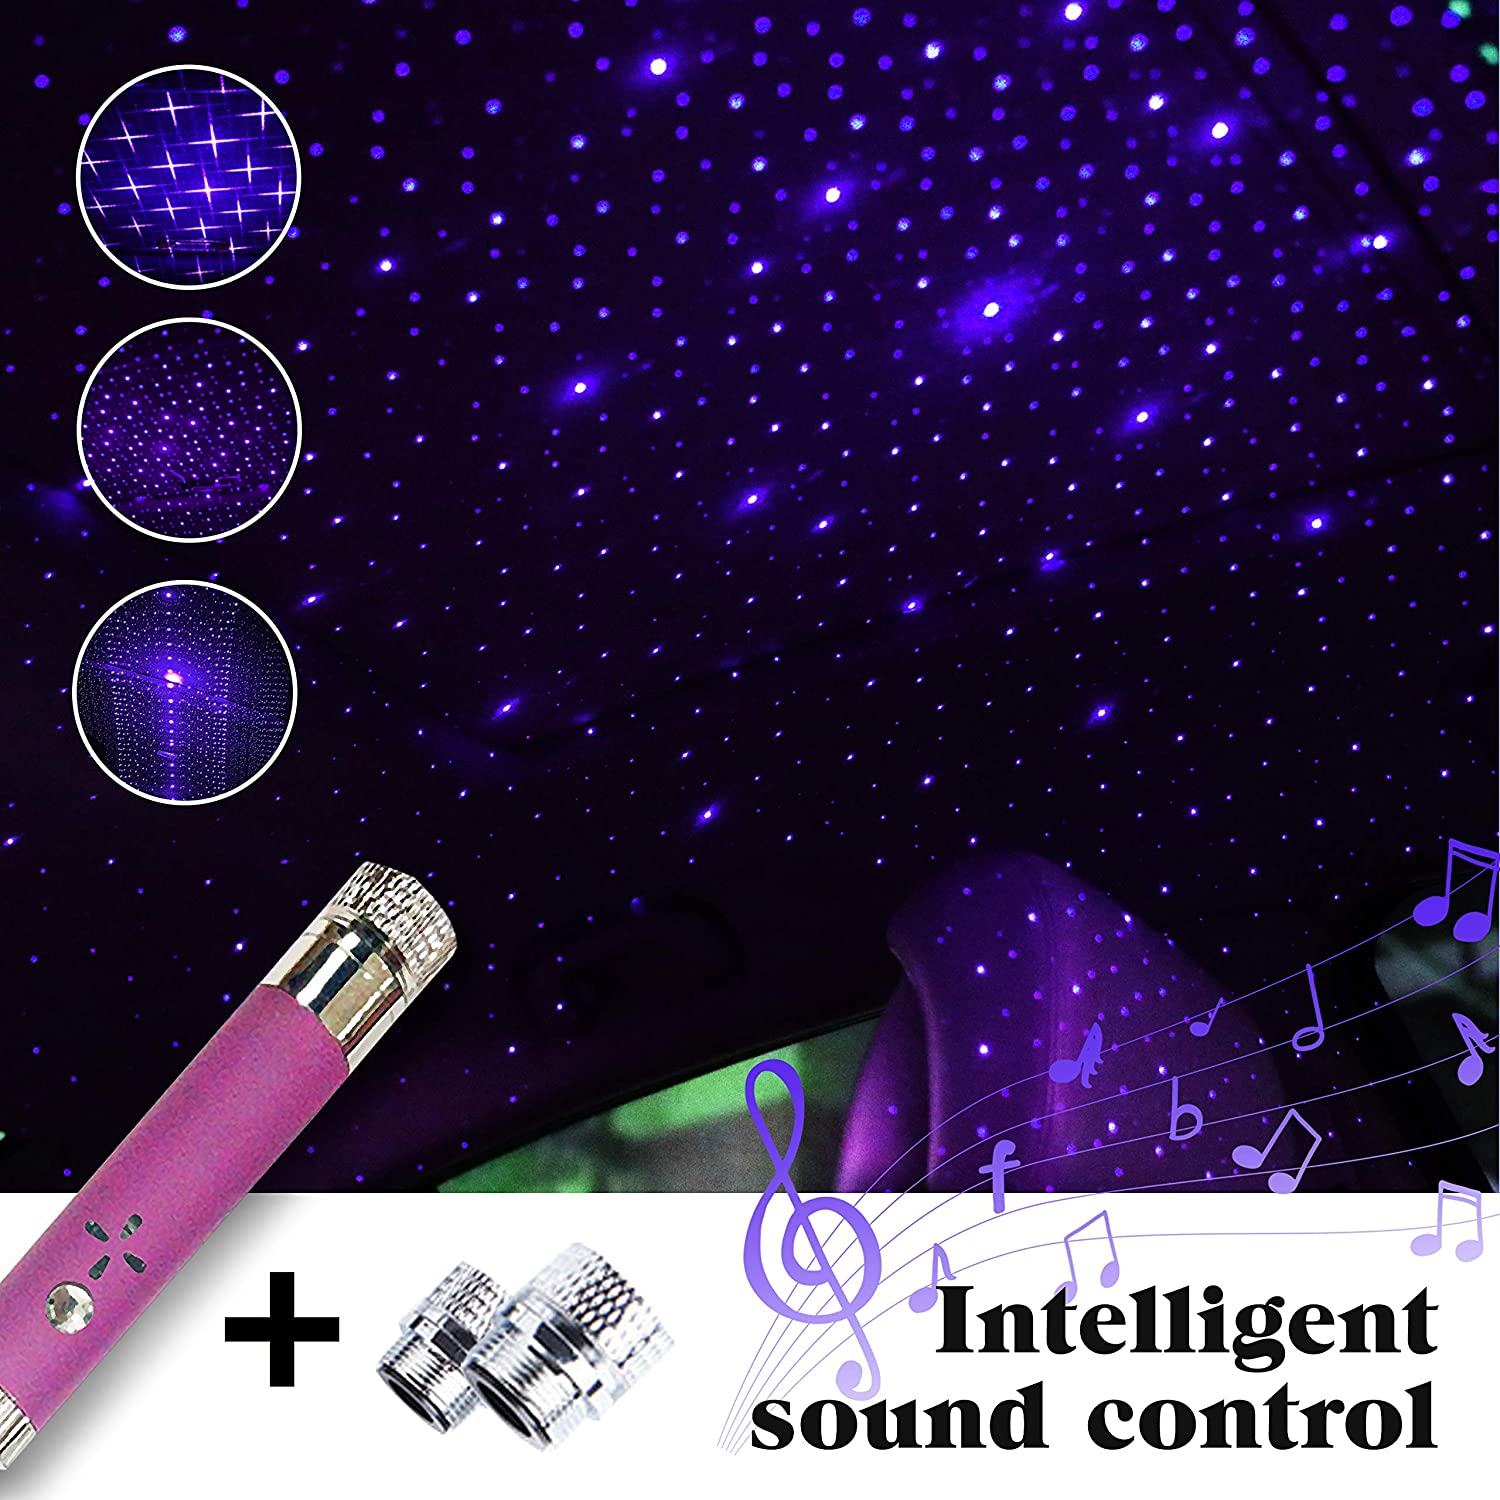 DAVIDLEE Car USB Sound Activated Star Projector Night Light,Romantic Portable Auto Roof Night Lights, Atmosphere Decorations Lamp with Three Modes Purple